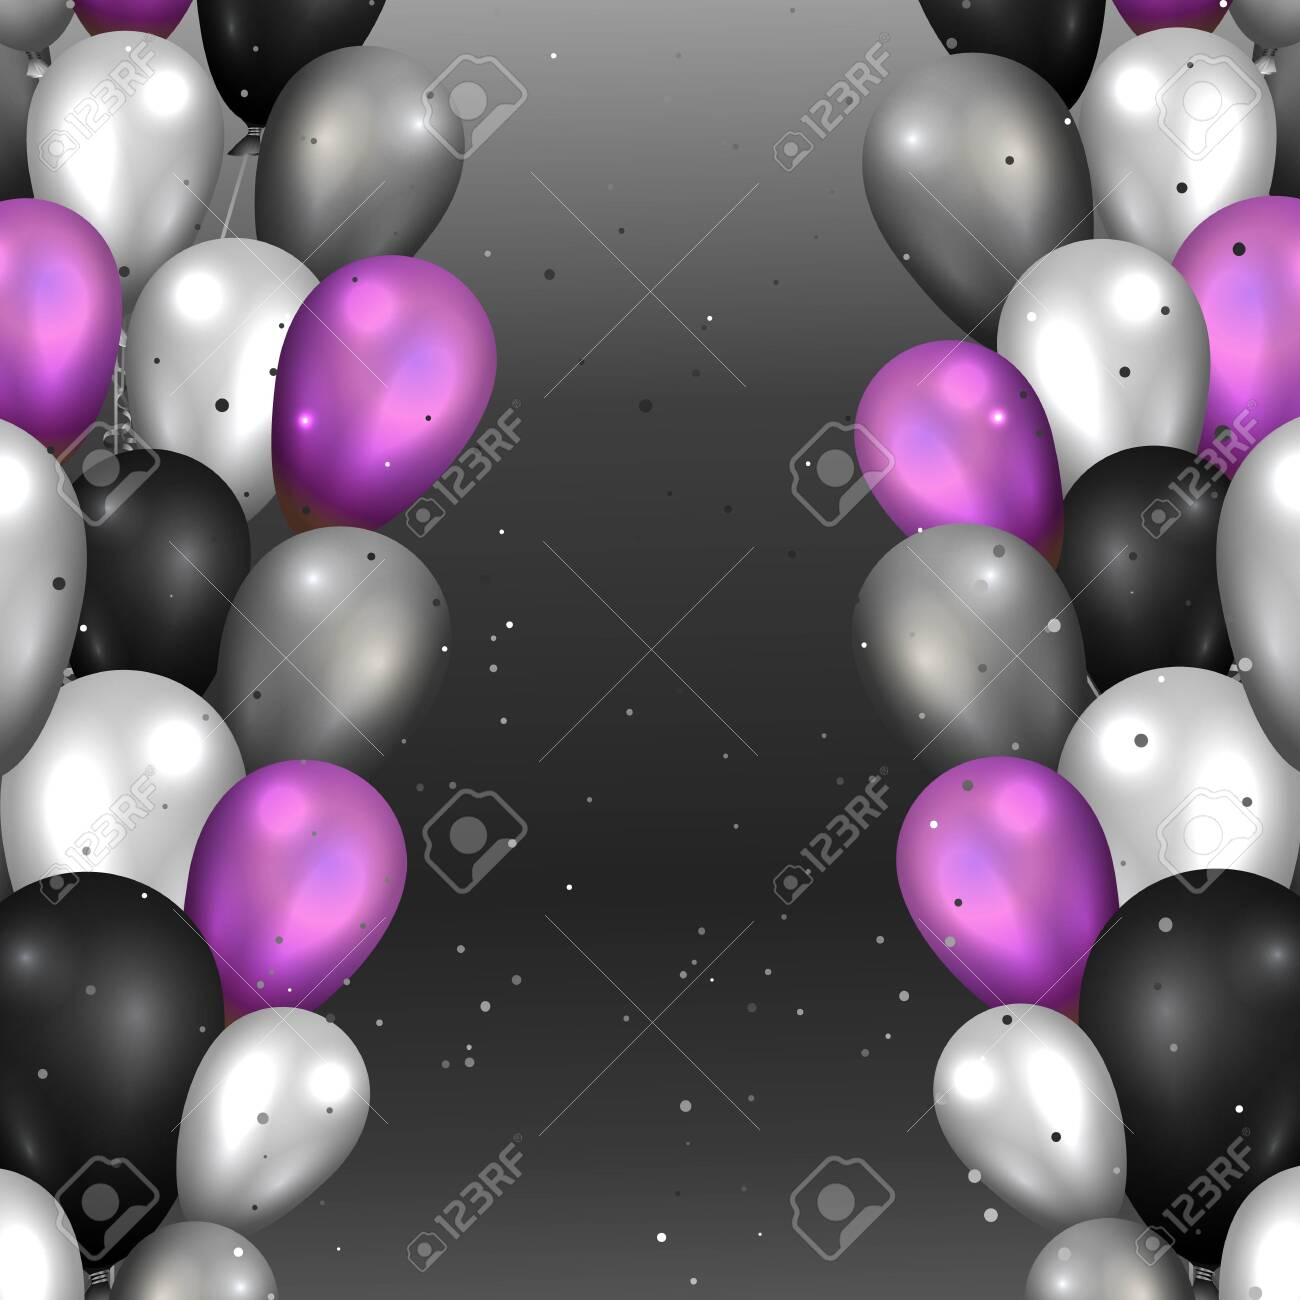 Realistic vector balloons background for web and print decoration, golden black and silver luxury illustration. - 133447477